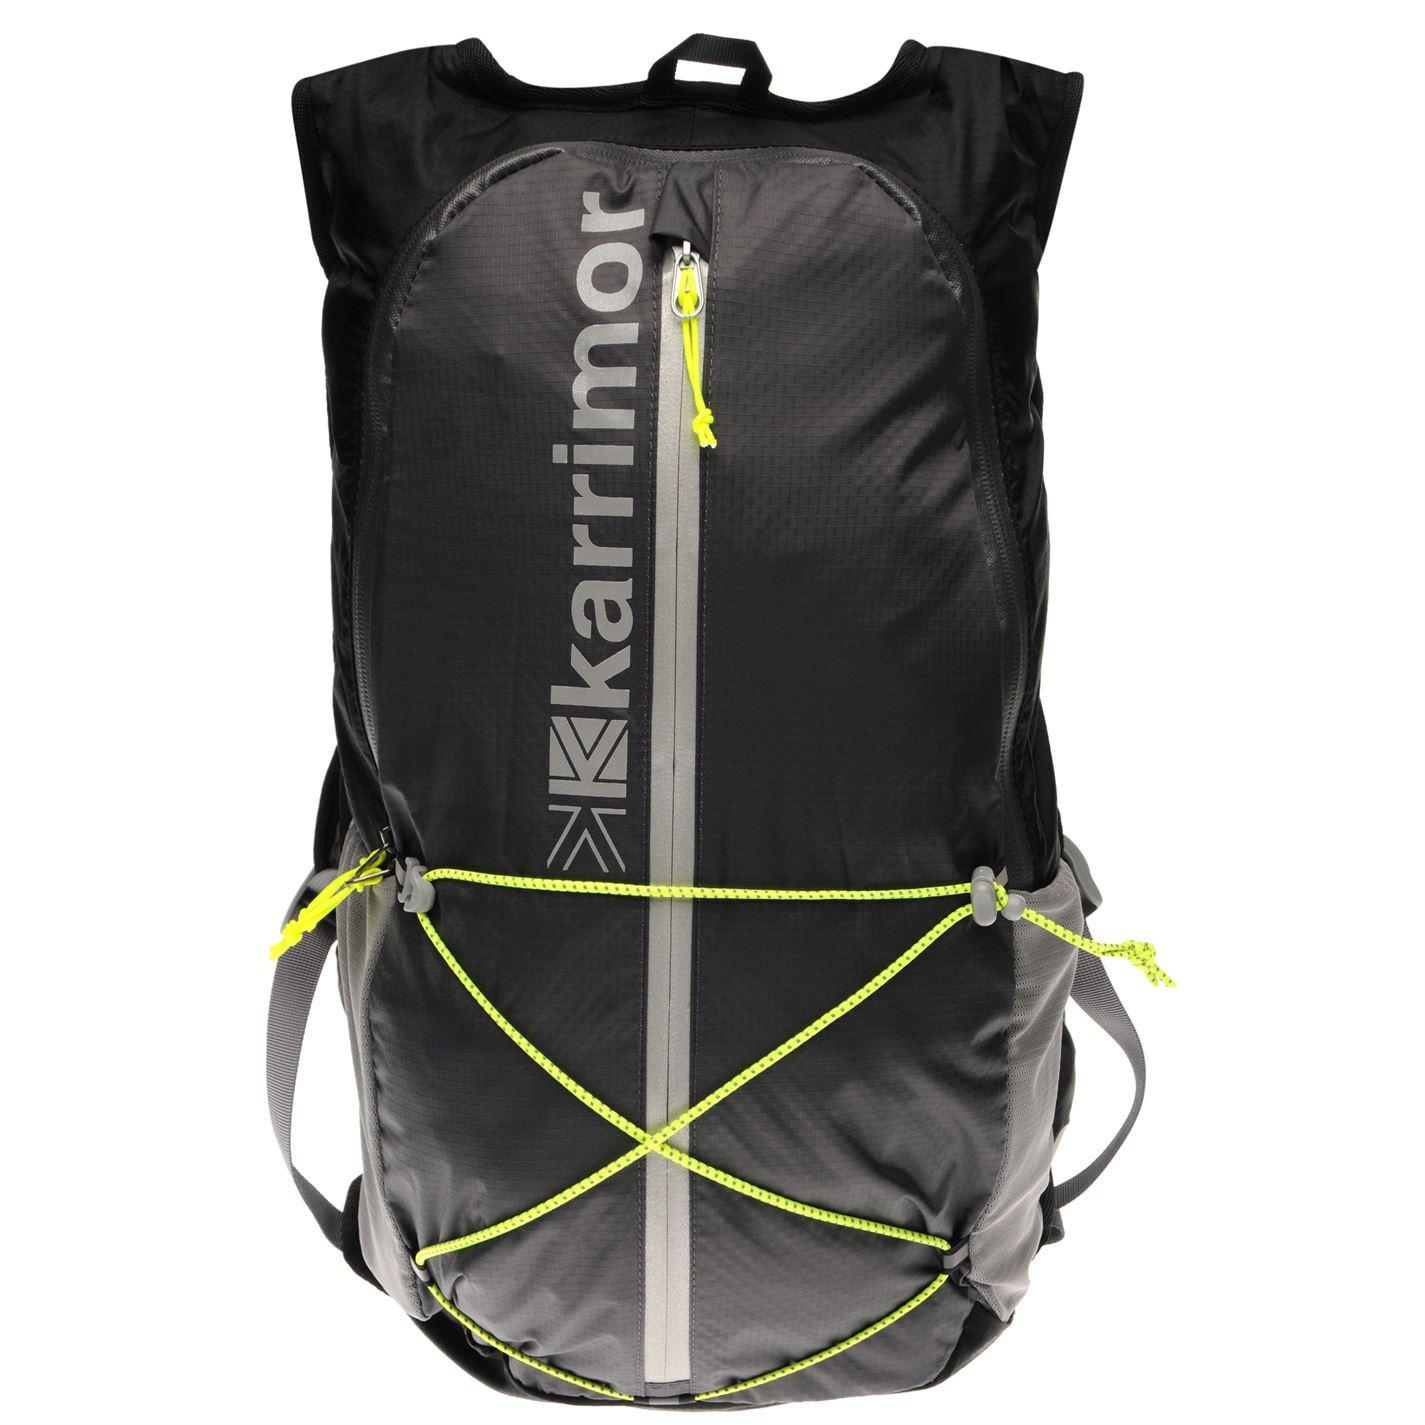 Karrimor X Lite 15 L jogging US Baggage Bag personnel belongings Carry Sac